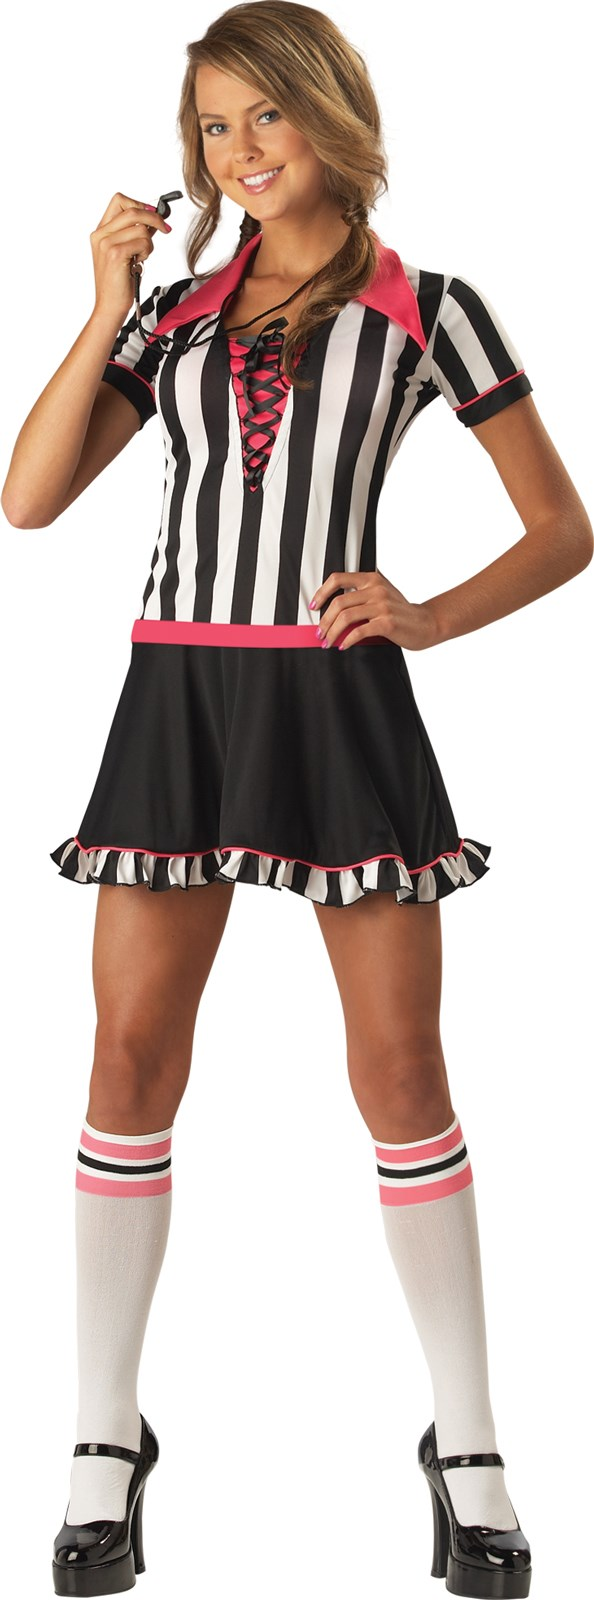 Referee Costume For Tweens